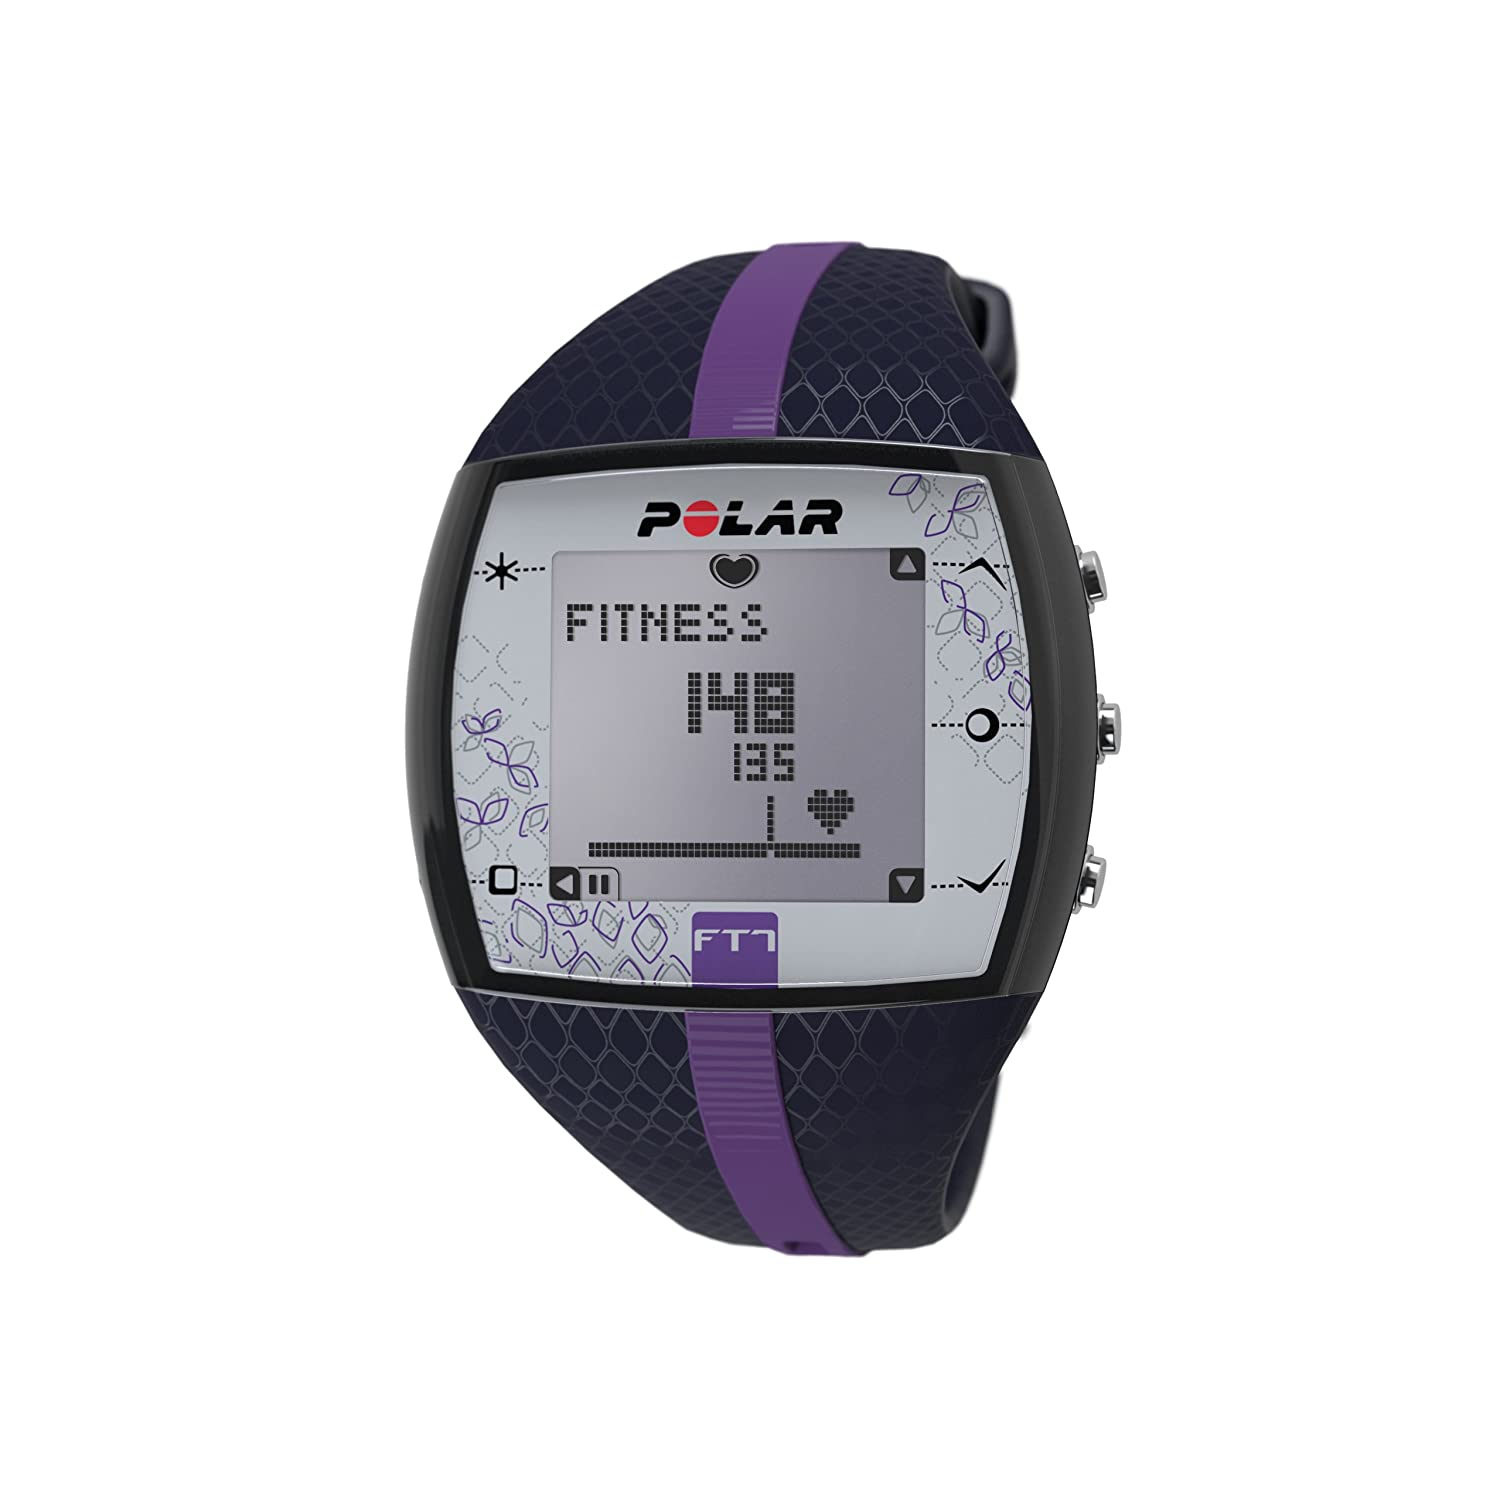 rate as gps for we s wrist based integrated monitor accuracy a built have optical the polar meet hear grey watches ohr running announced proprietary inside watch back well